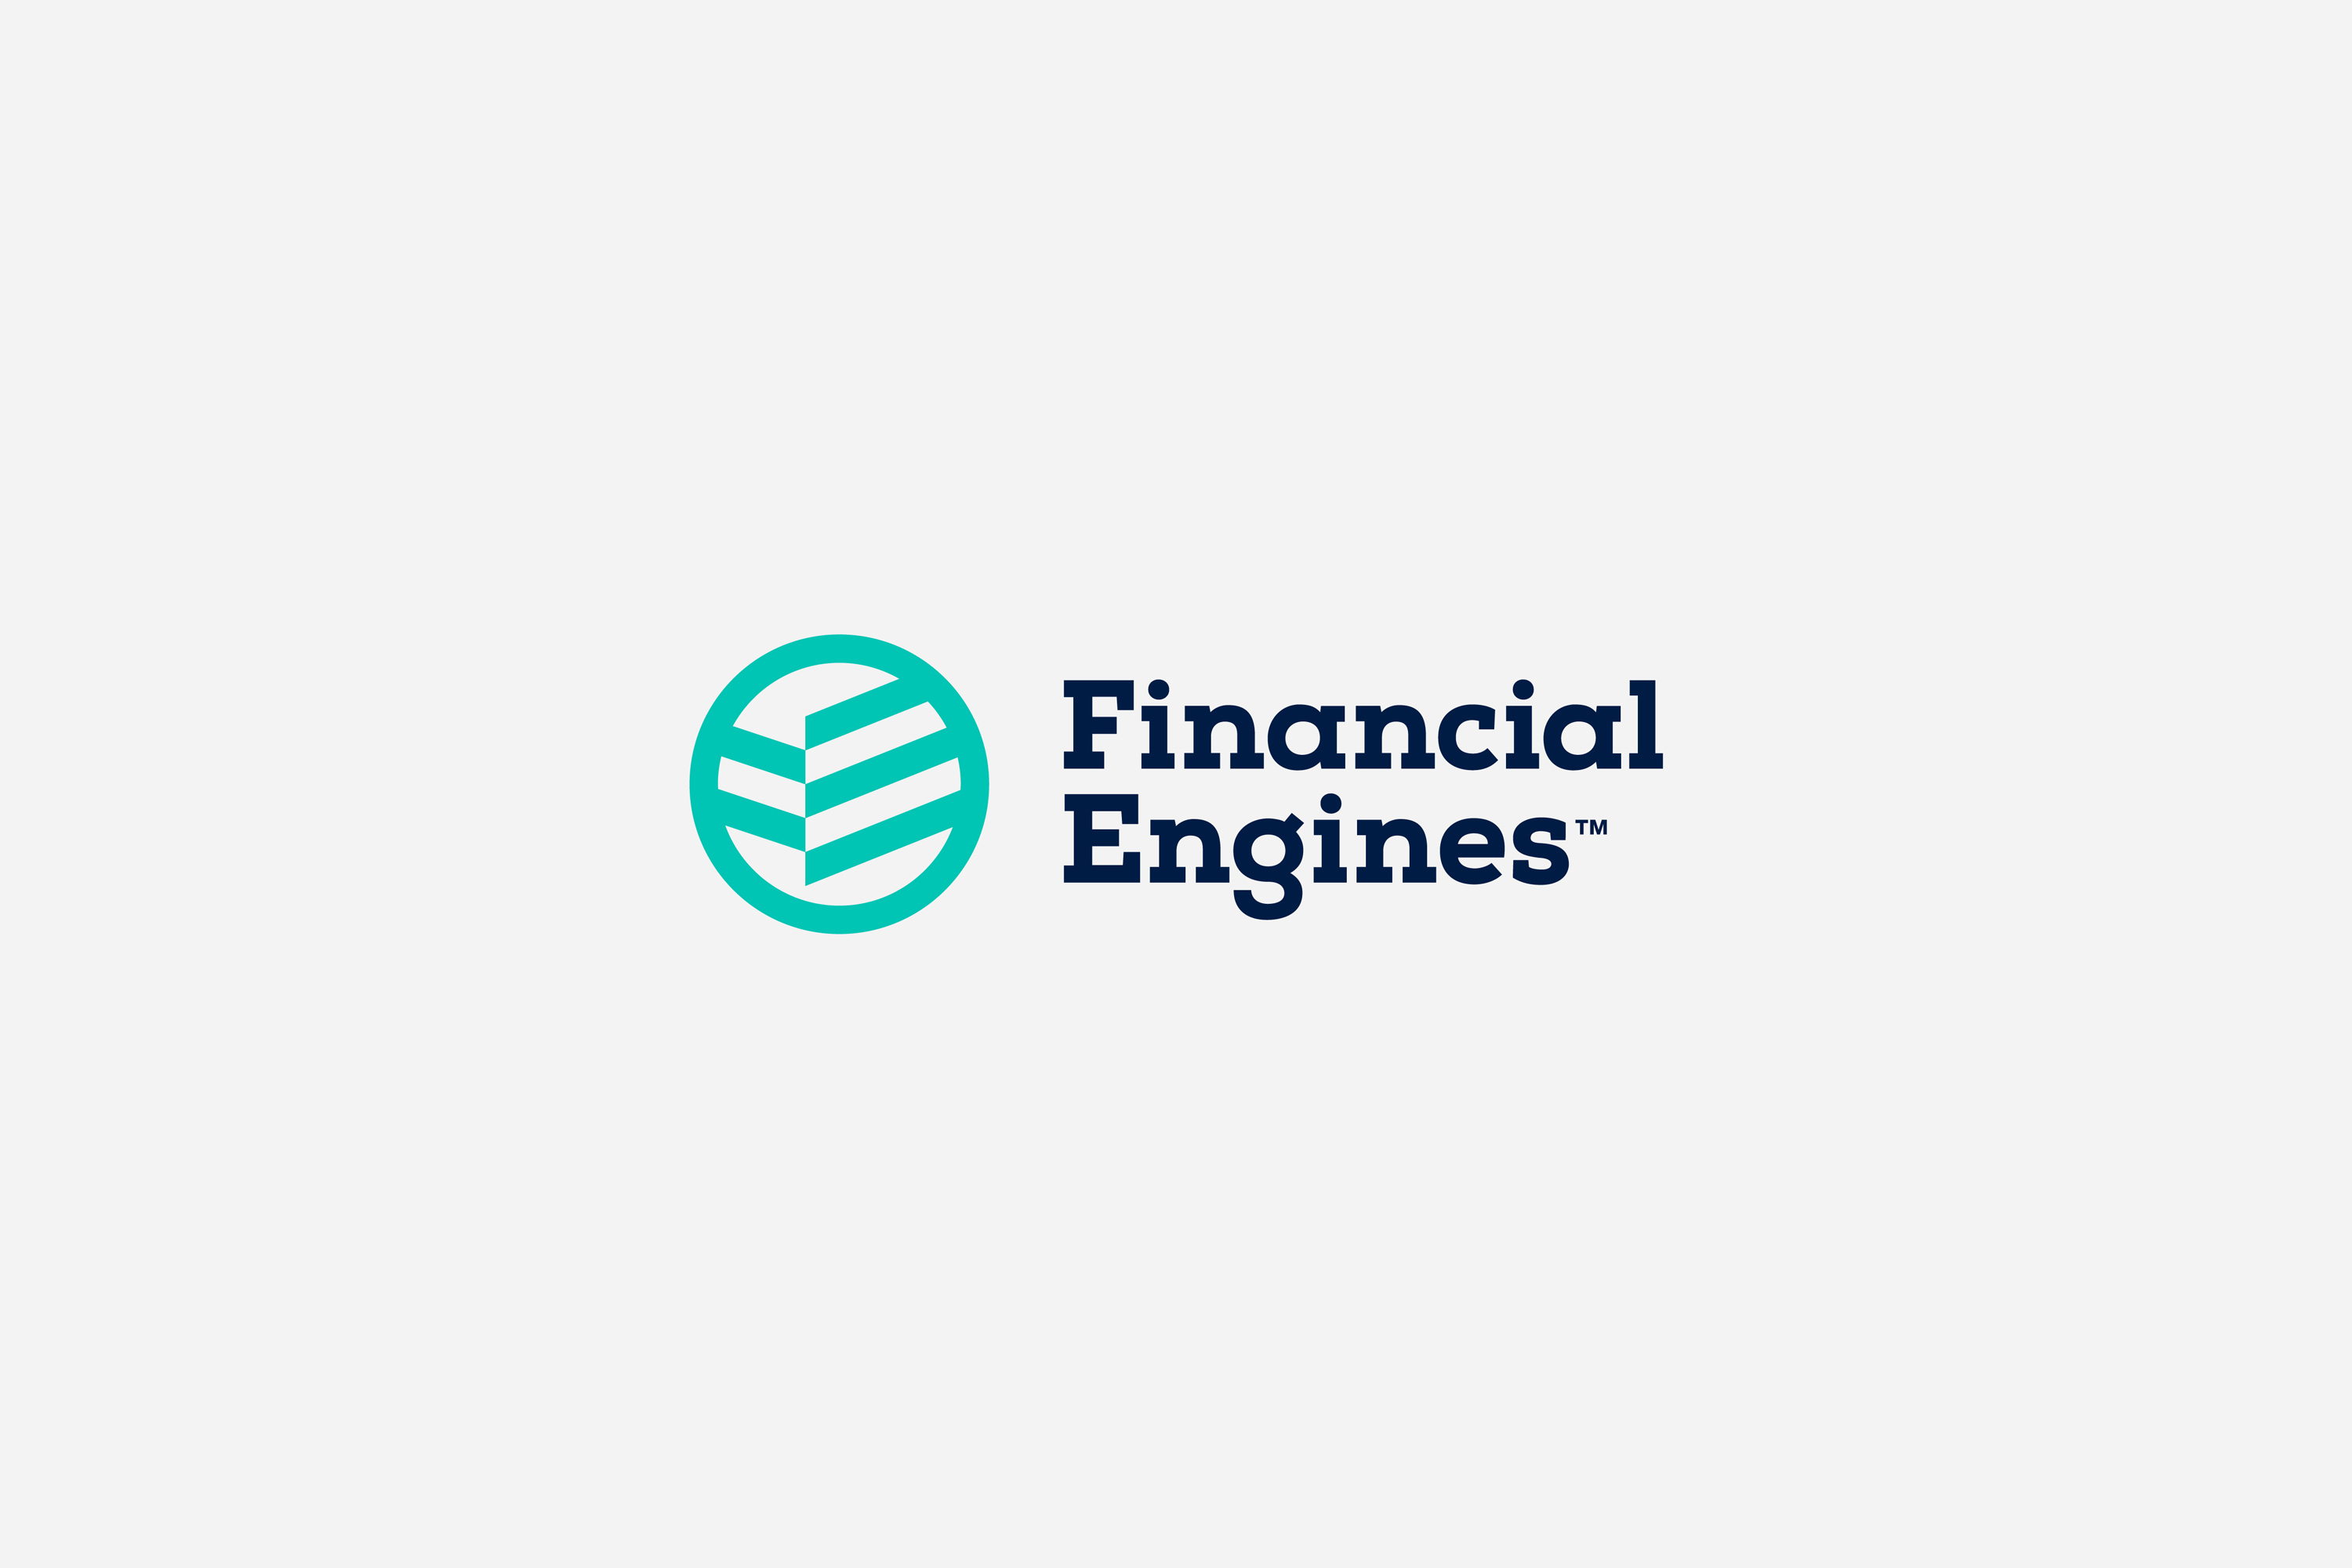 Financial_Engines_04